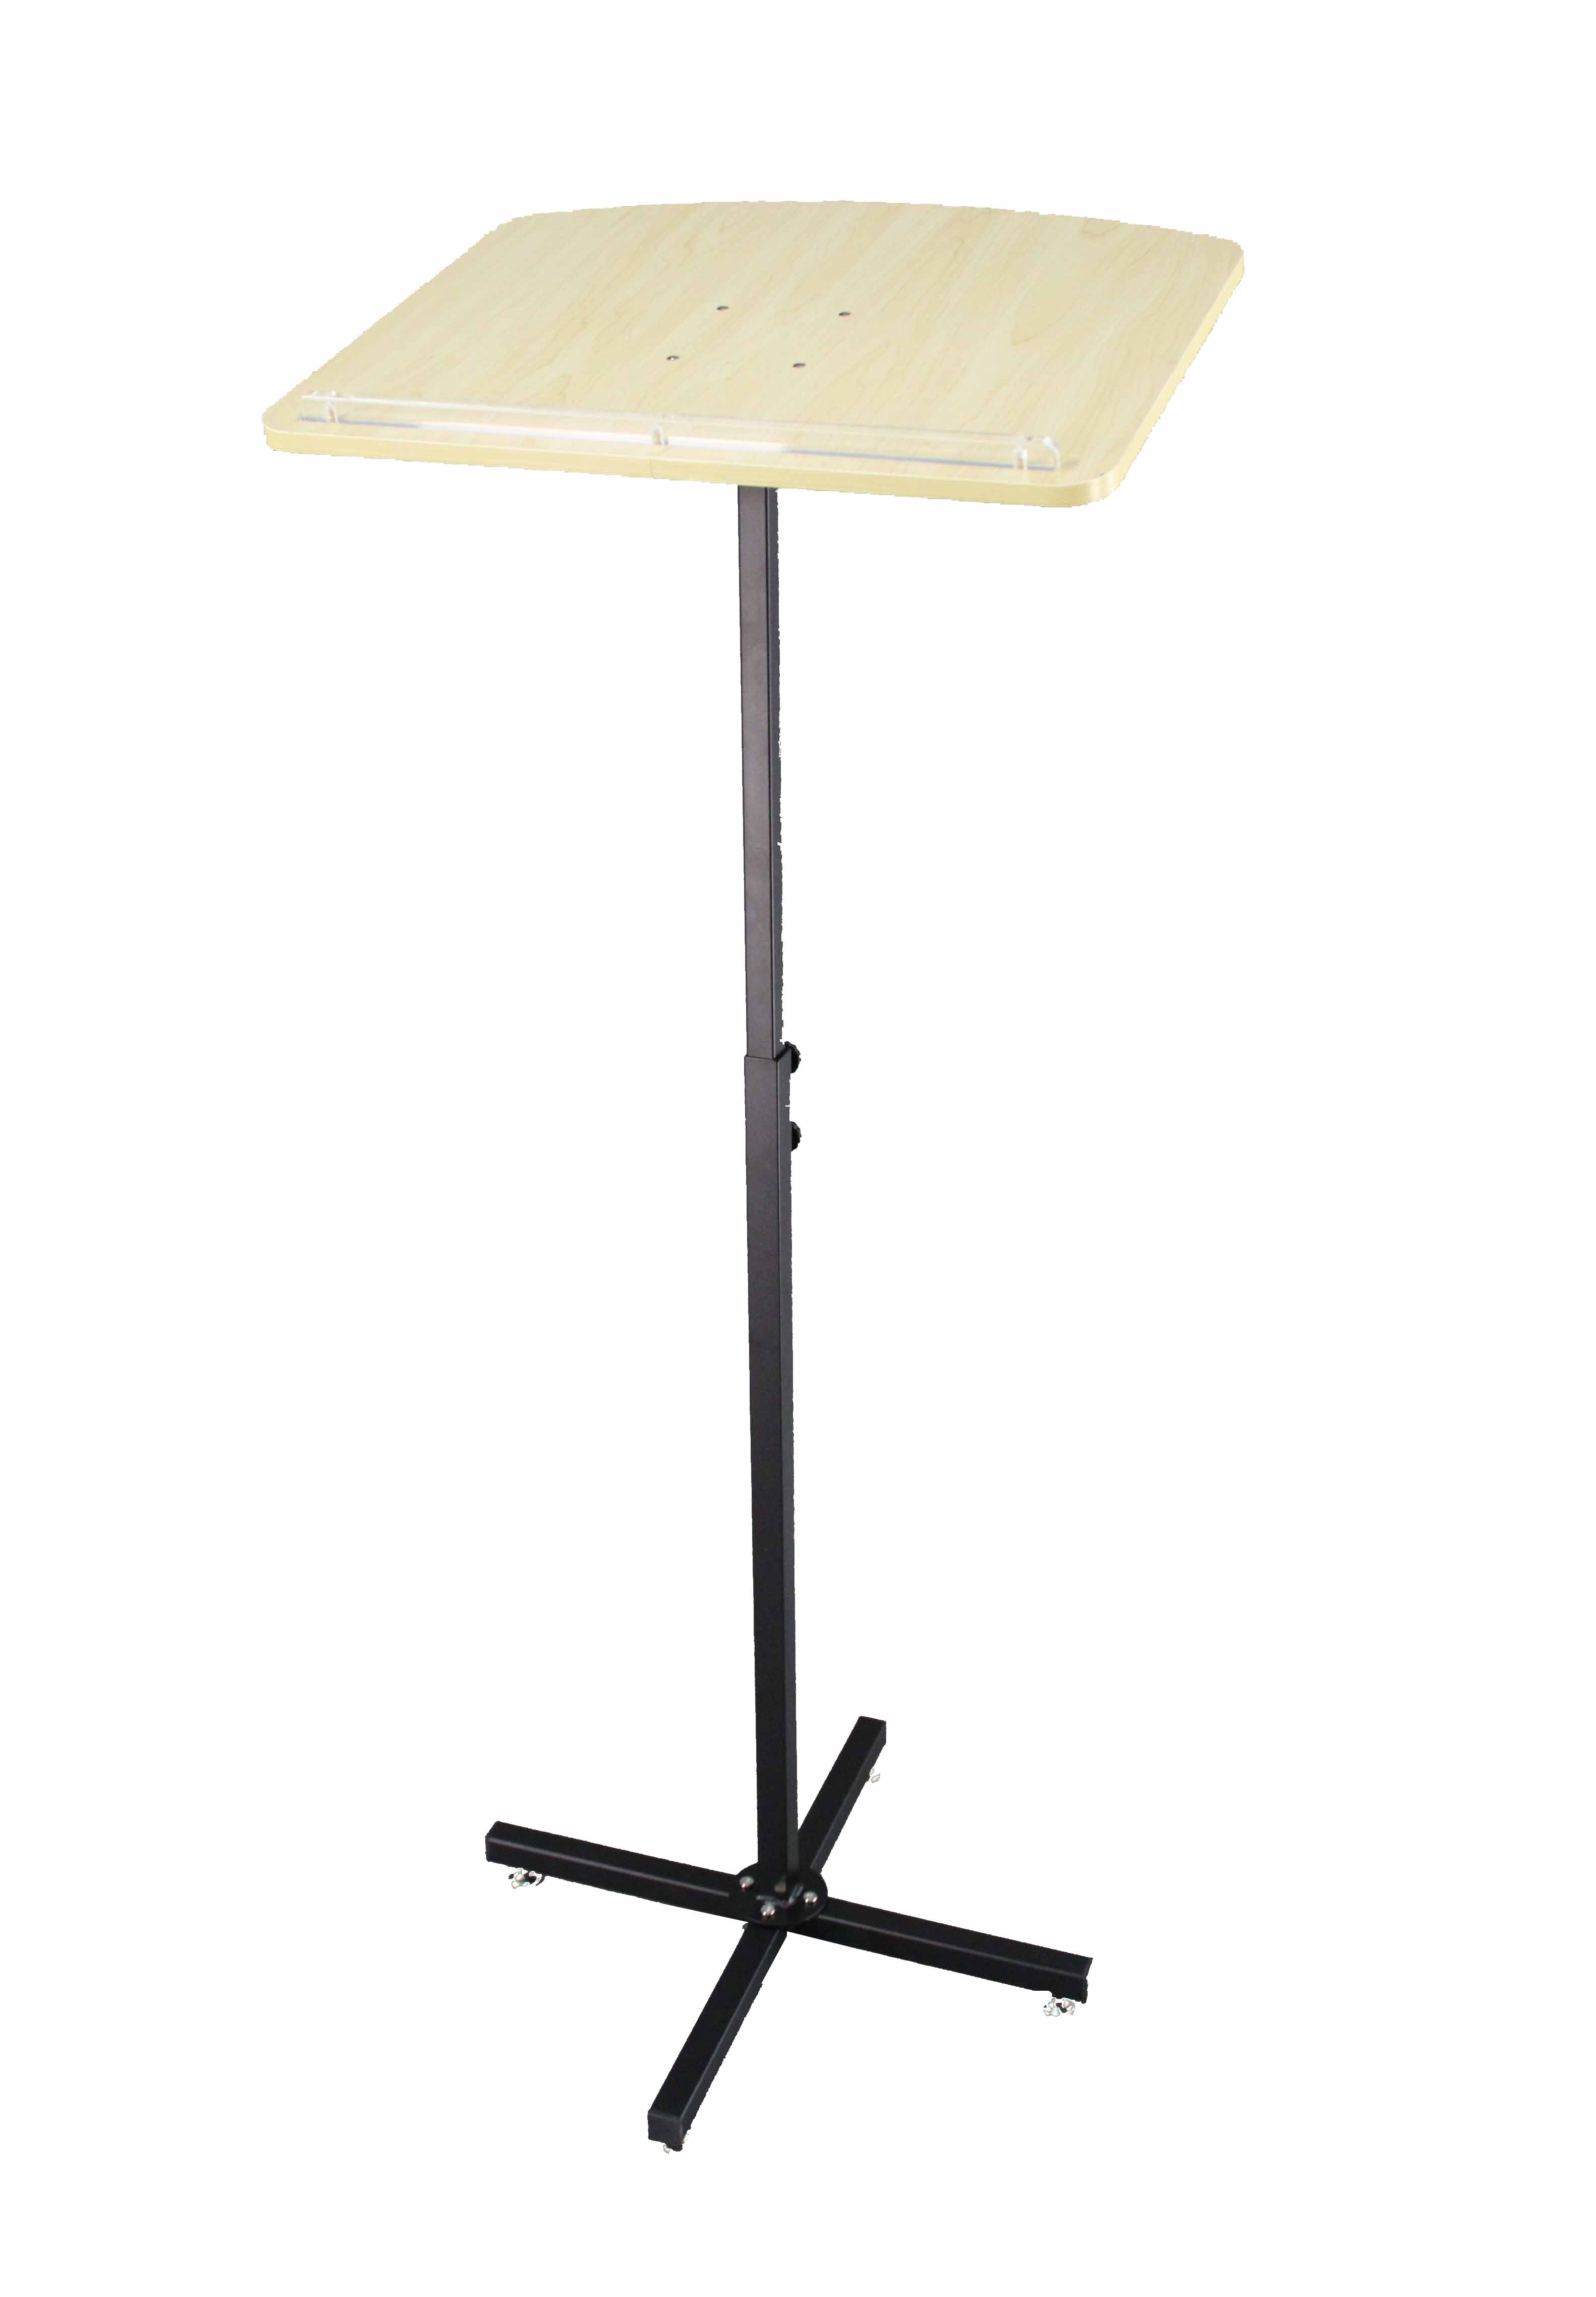 Wood Lectern Adjustable Height Metal Stand Podium Portable